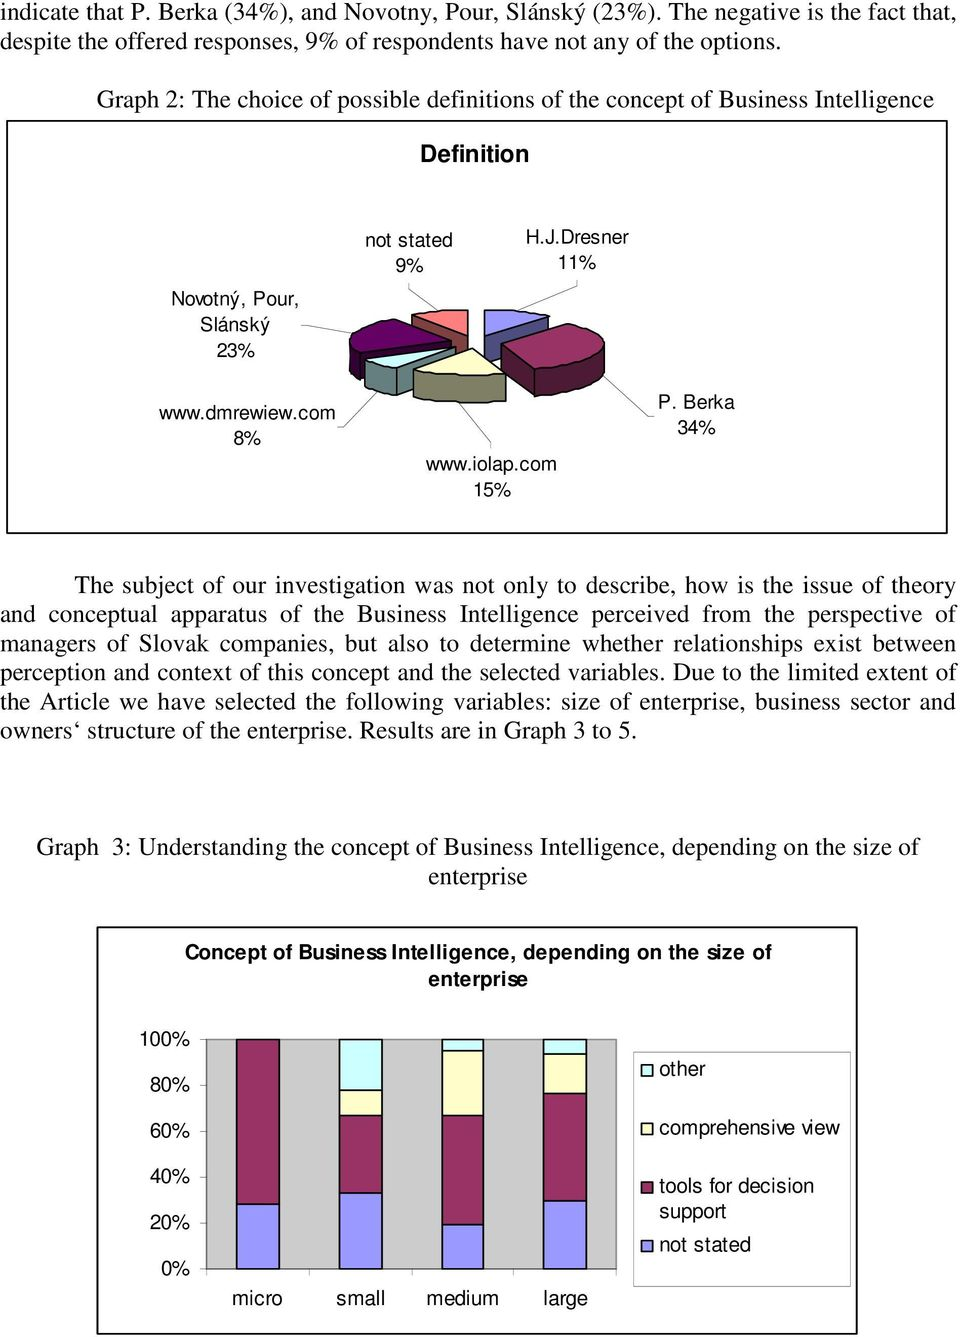 understanding the concept of business intelligence in slovak